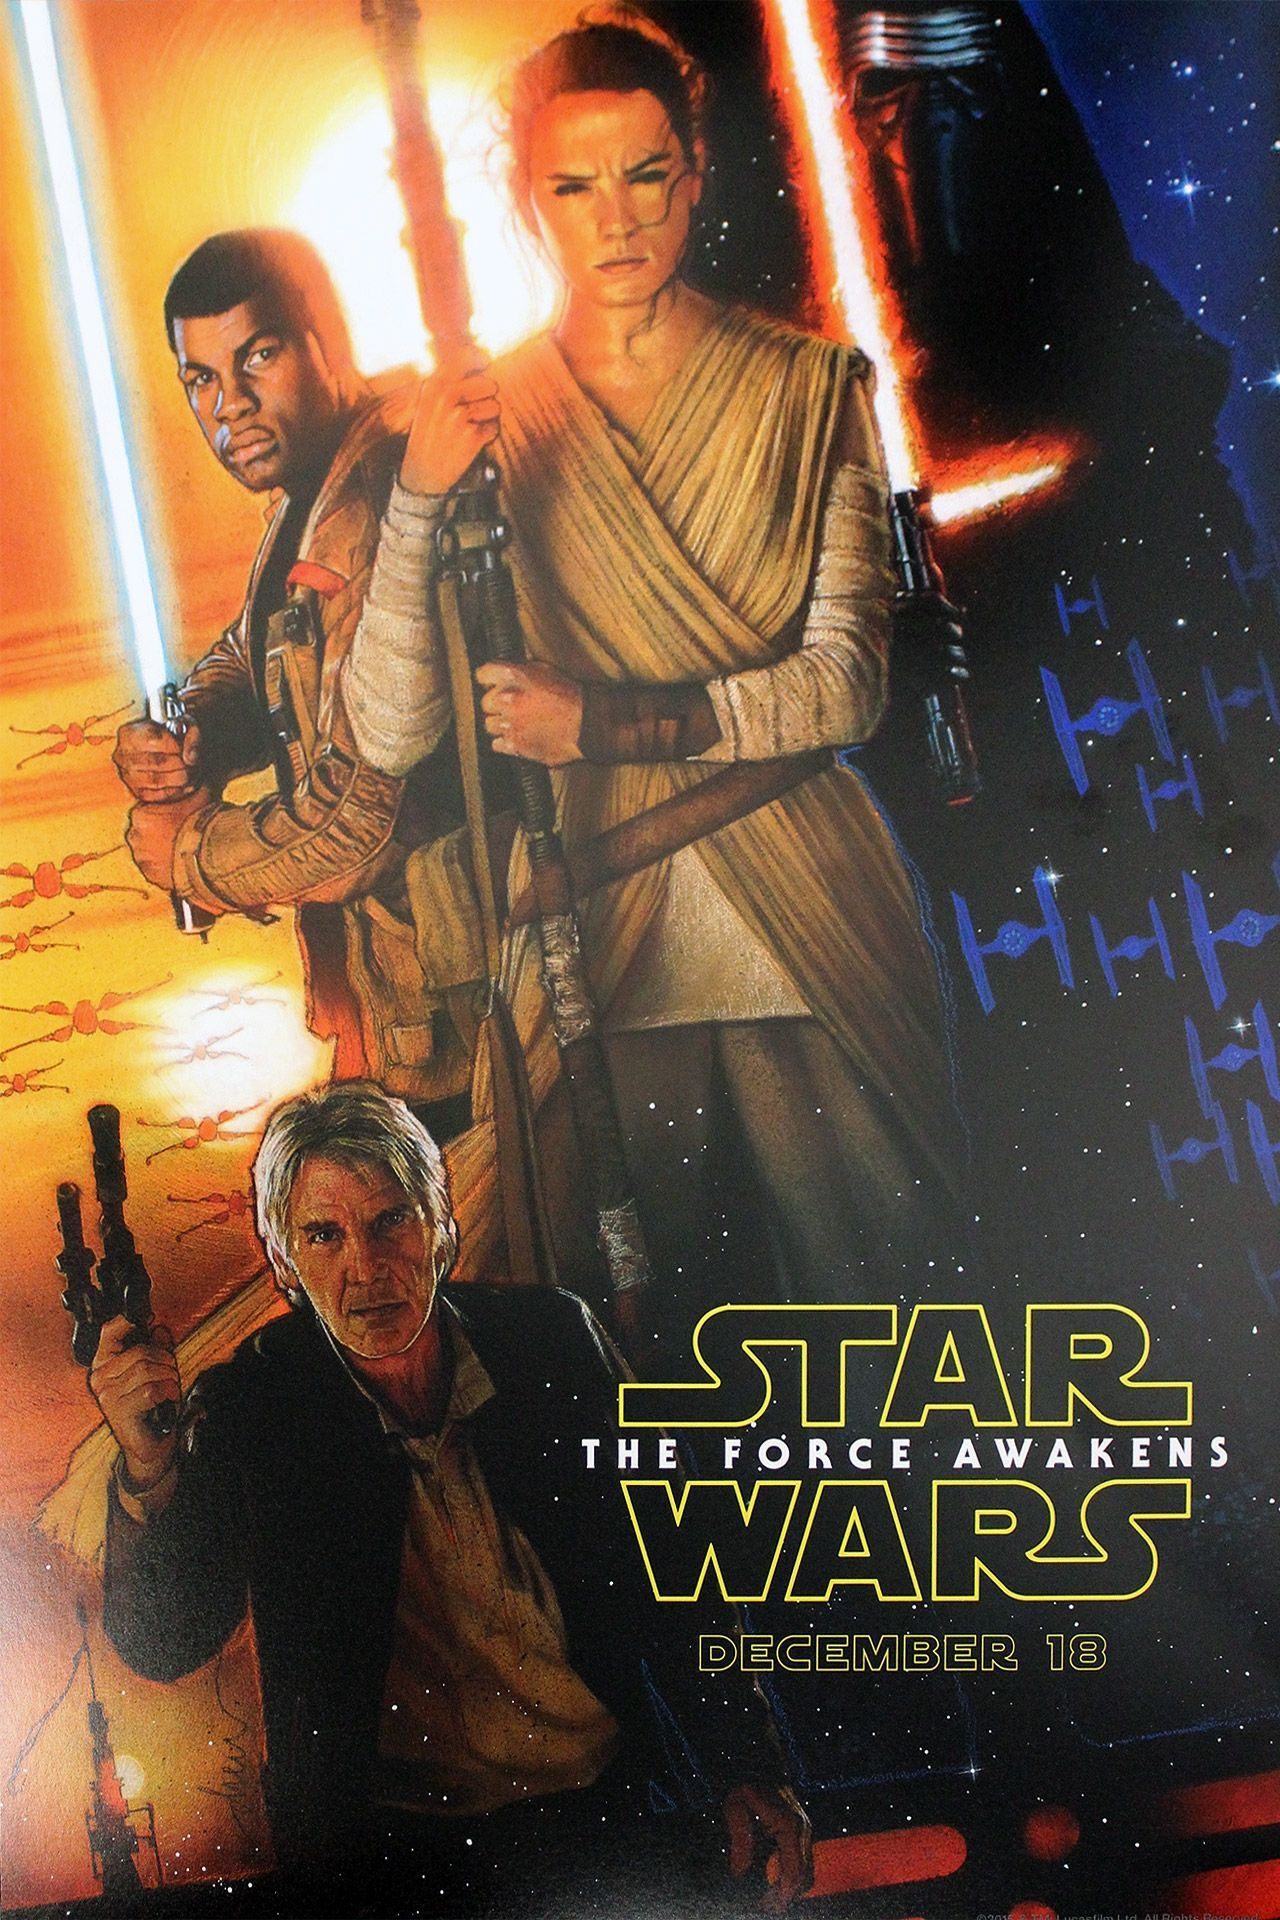 SPOILER-FREE MOVIE REVIEW: Star Wars The Force Awakens